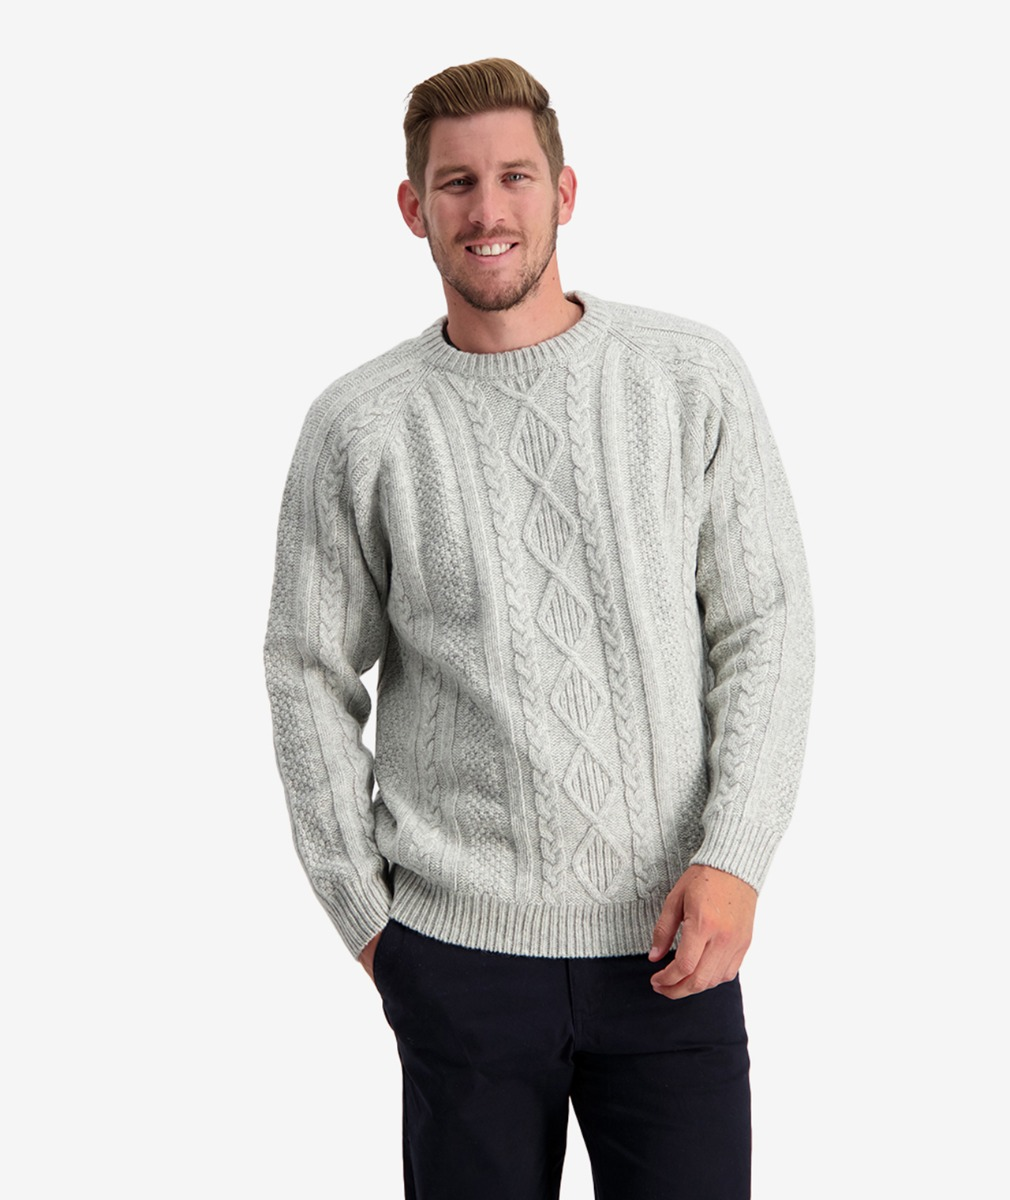 Swanndri Men's Back Beach Cable Crew Jumper in New Silver